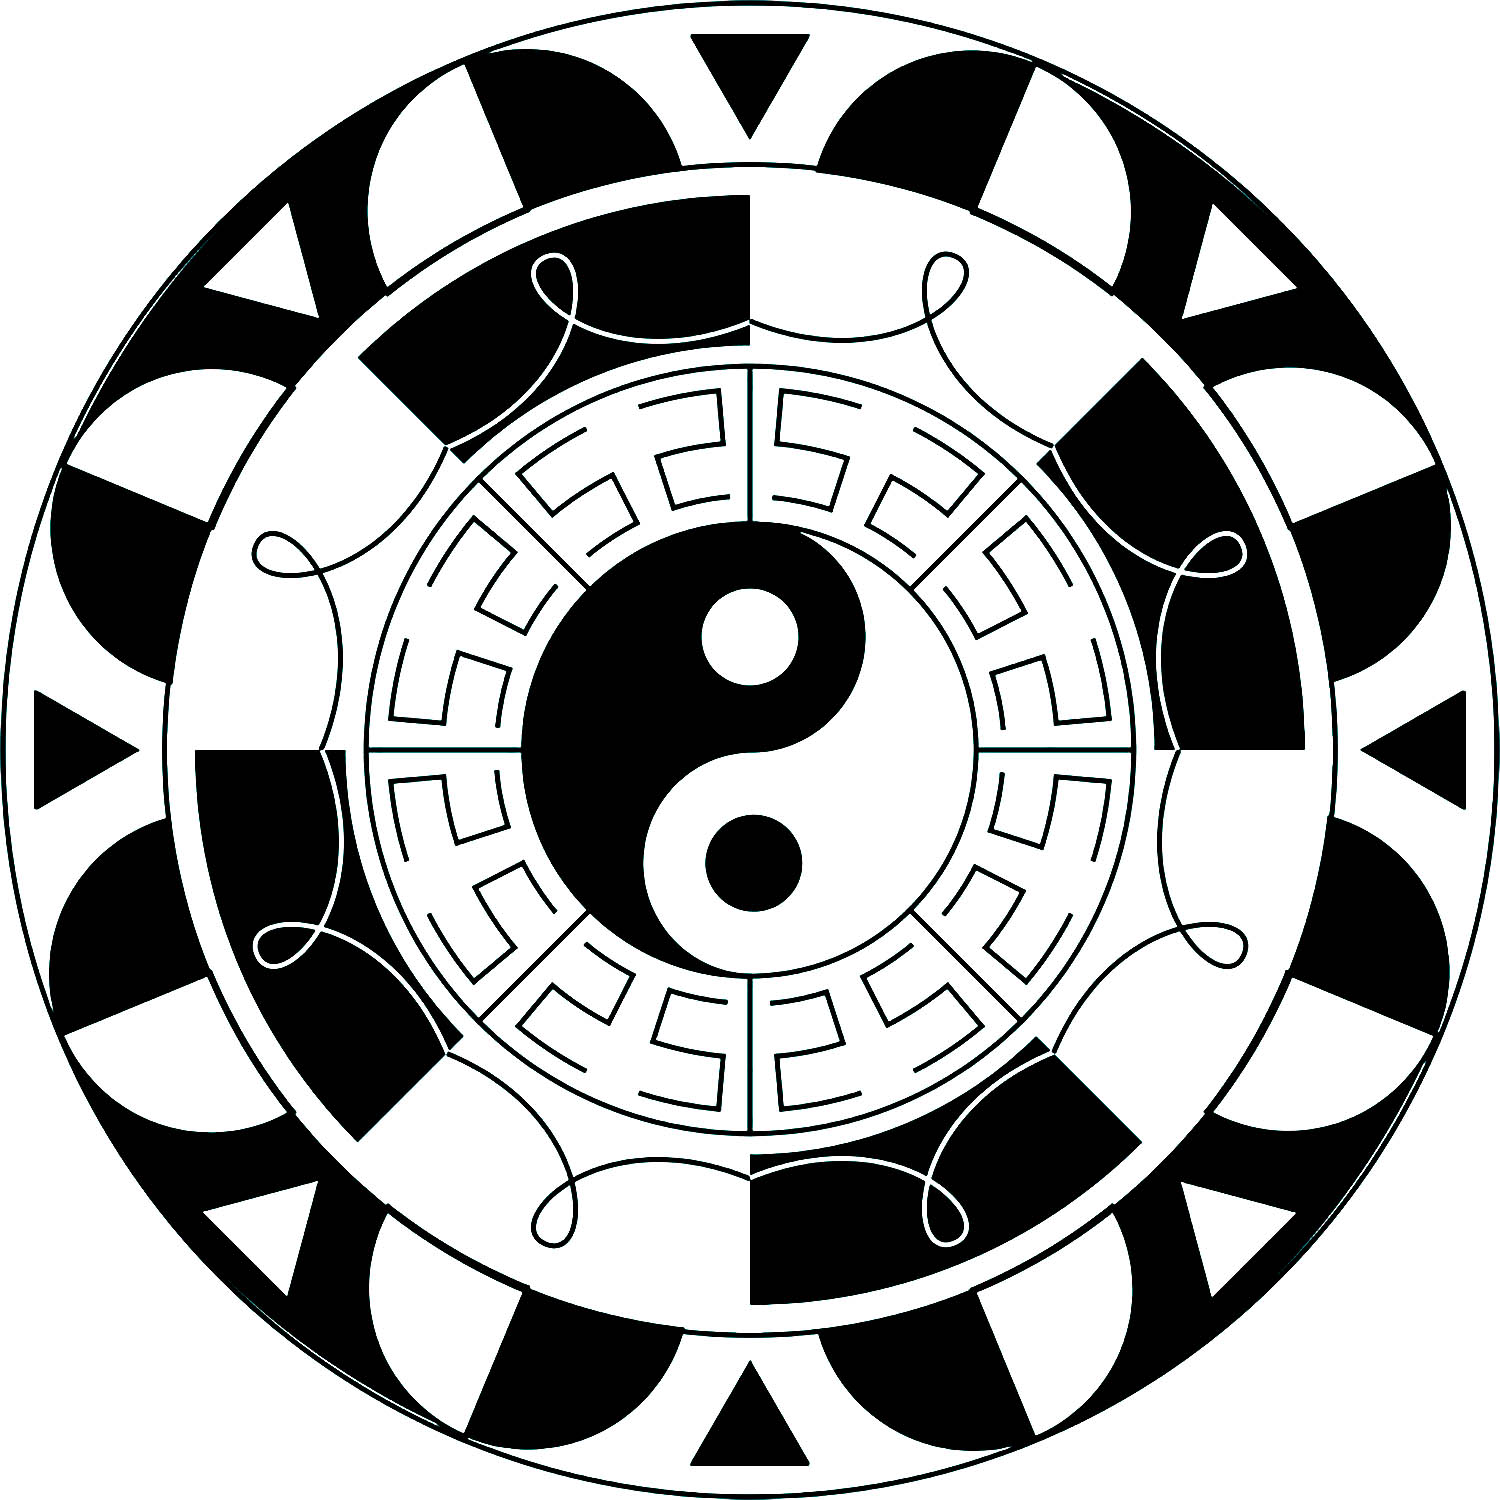 Simple Mandala with black & white elements, and the symbol Yin & Yang in the middle